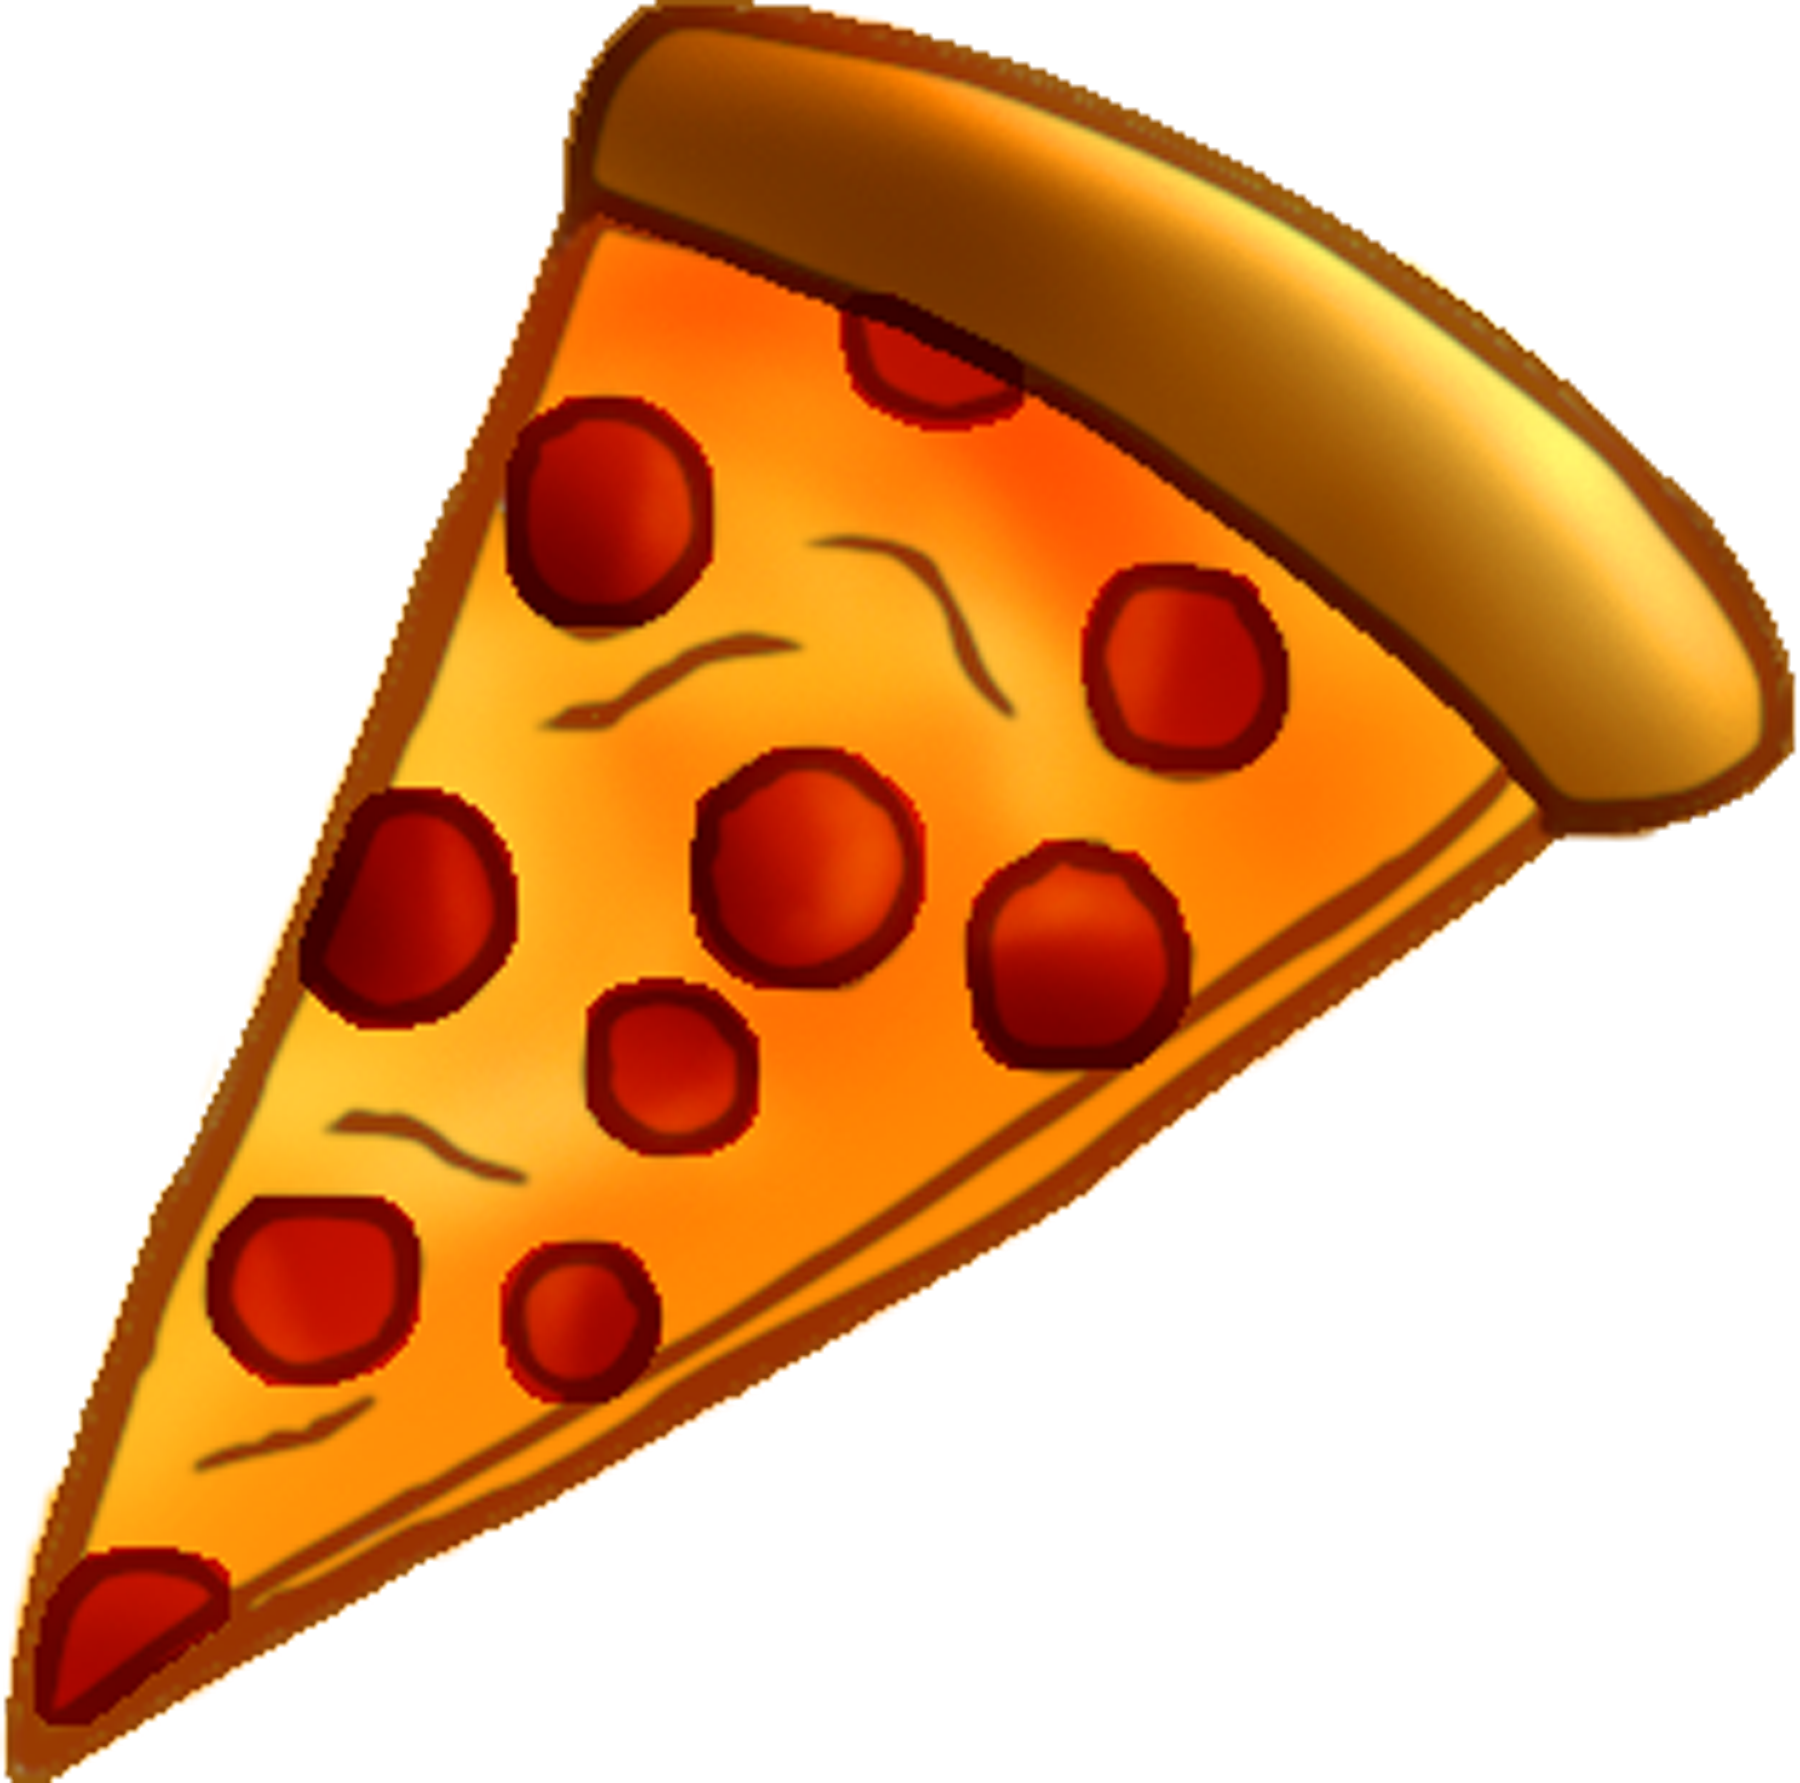 Free Png Pizza Slice - Pizza Slice Clipart, Transparent background PNG HD thumbnail